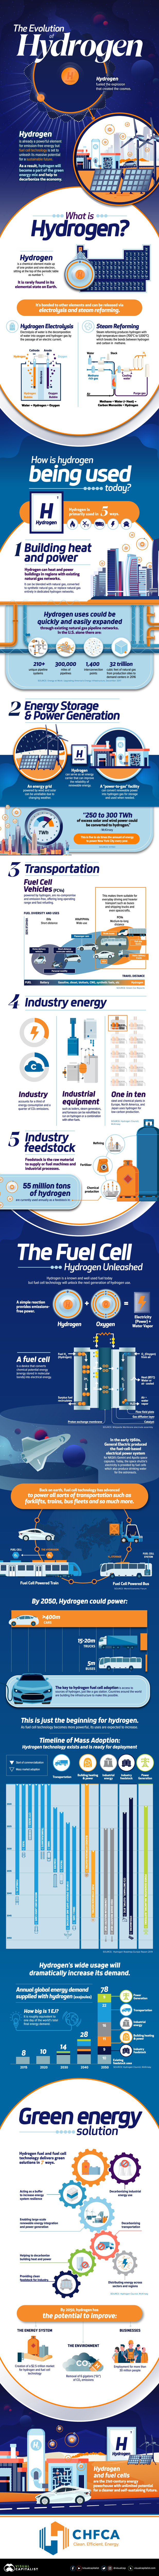 The Evolution of Hydrogen: From the Big Bang to Fuel Cells